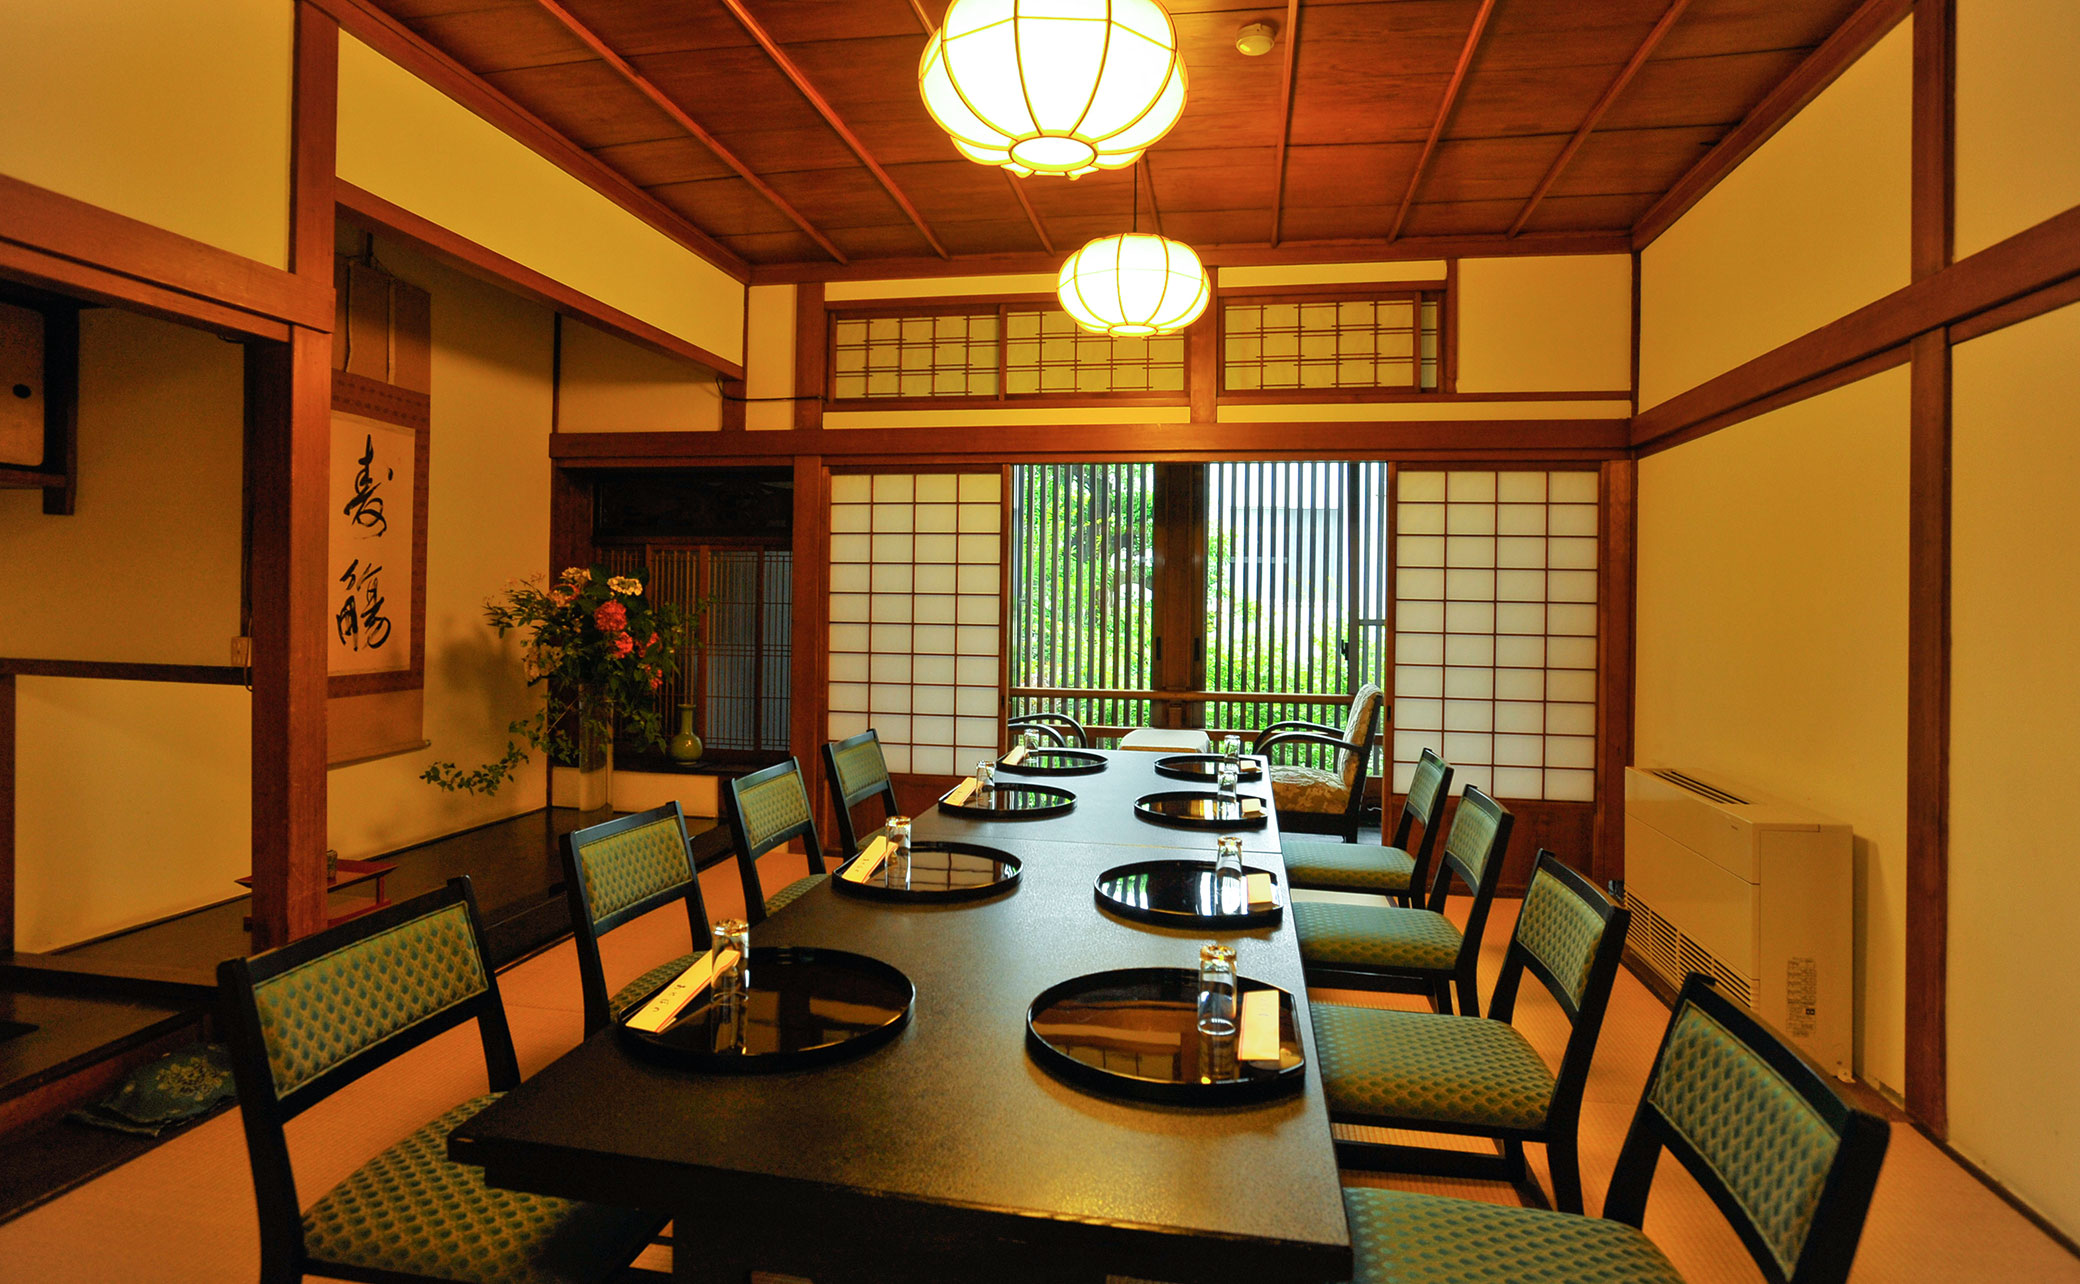 Old building Japanese-style room